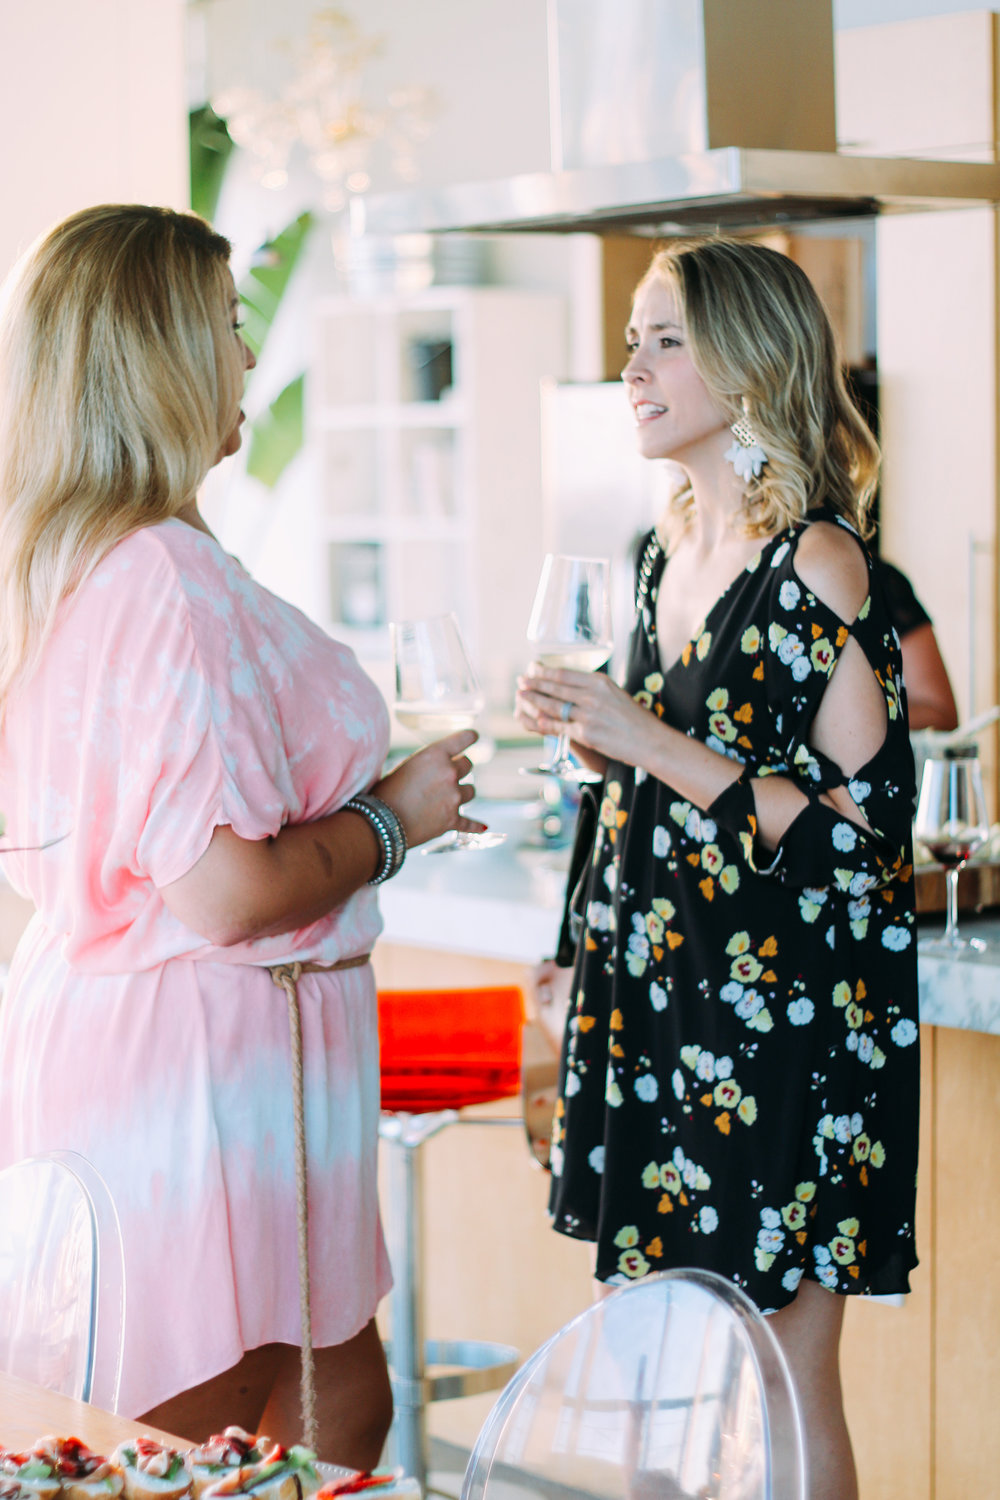 Women Who Wine Uncorked Conversations-Miami Wine Events-Wine Tasting Miami-32.jpg